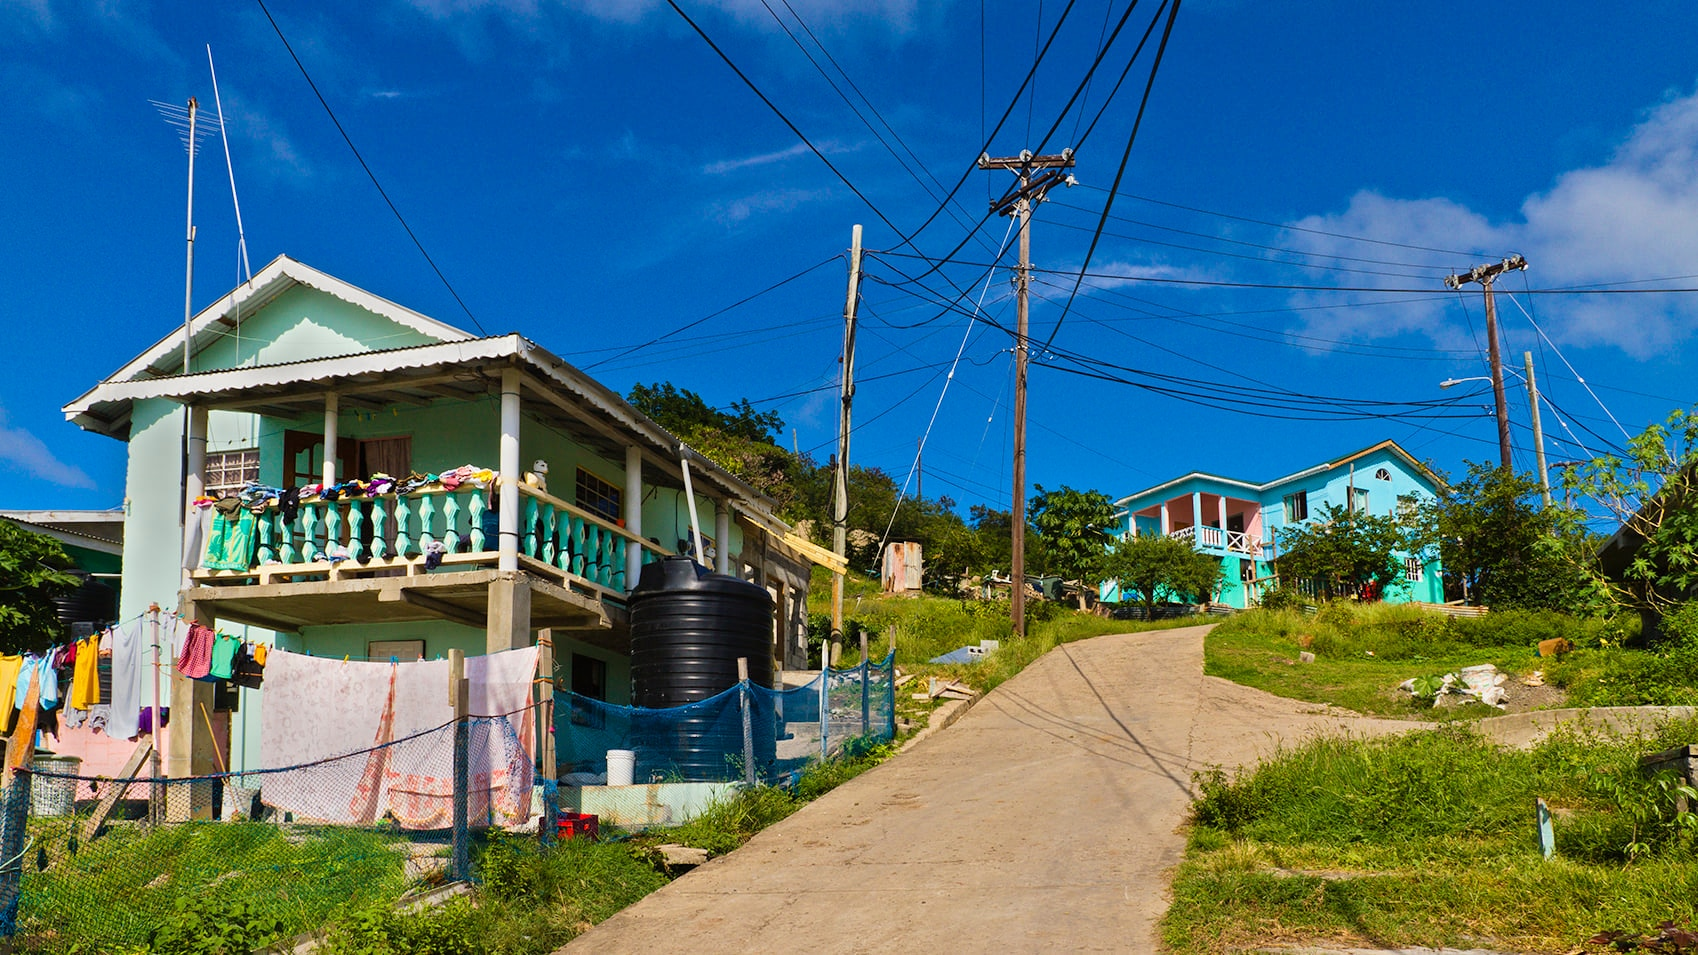 Saint Vincent And The Grenadines The Right Place To Live The Idyllic Tropical Island Life Skyticket Travel Guide